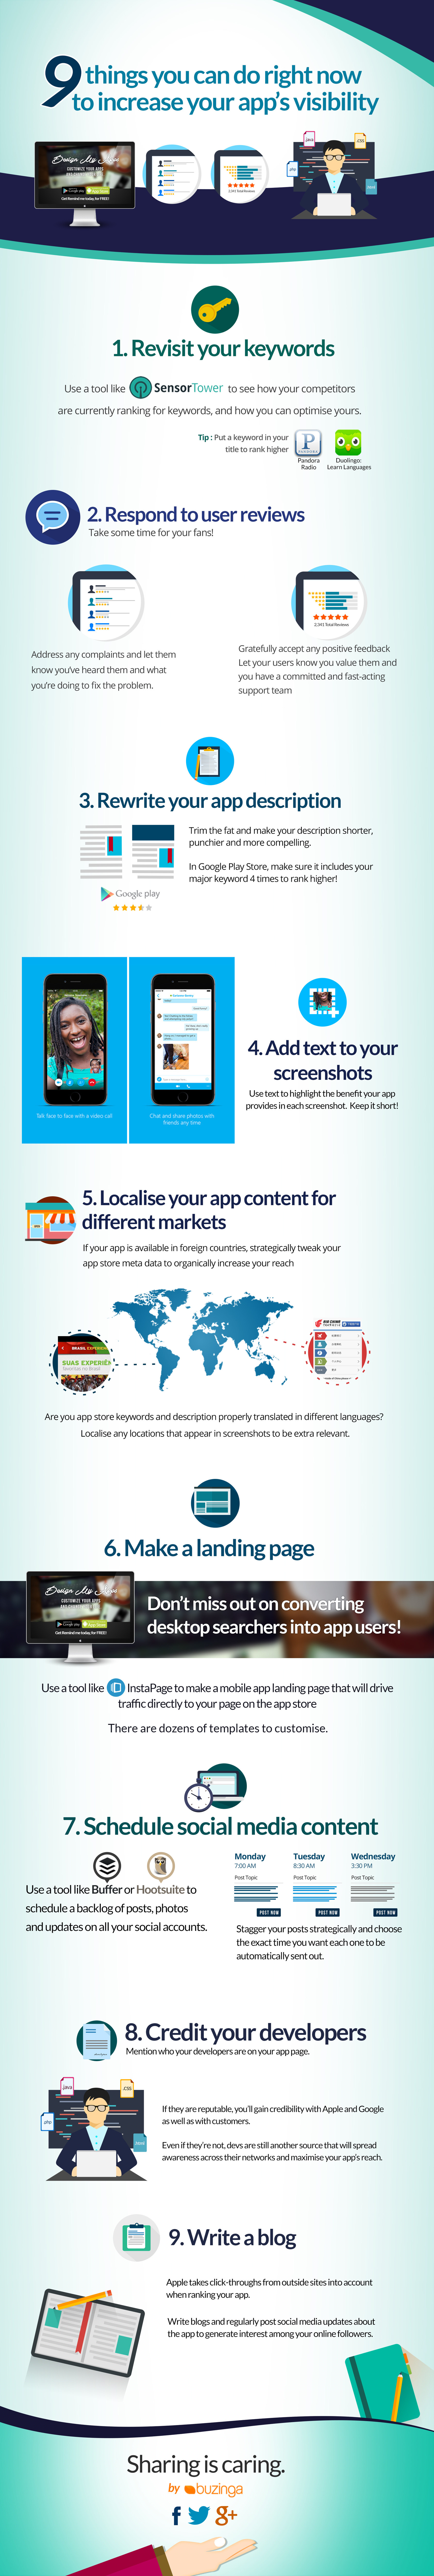 increase app visibility